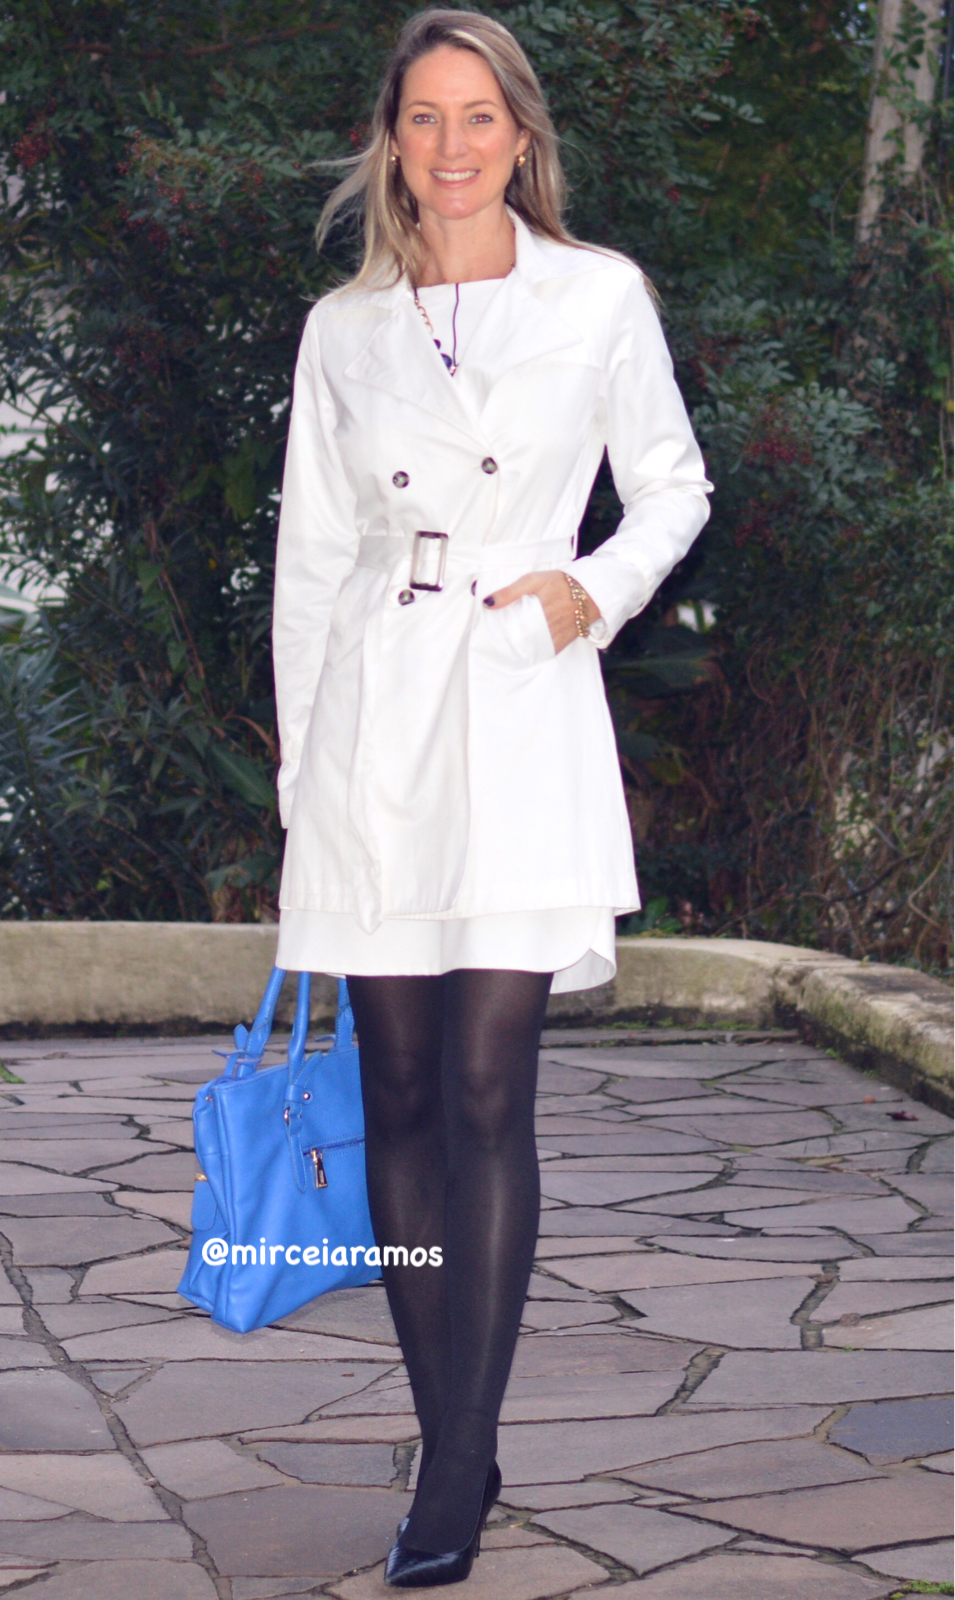 Look de trabalho - look do dia - look corporativo - moda no trabalho - work outfit - office outfit -  spring outfit - look executiva - fall outfit - trench coat branco - white